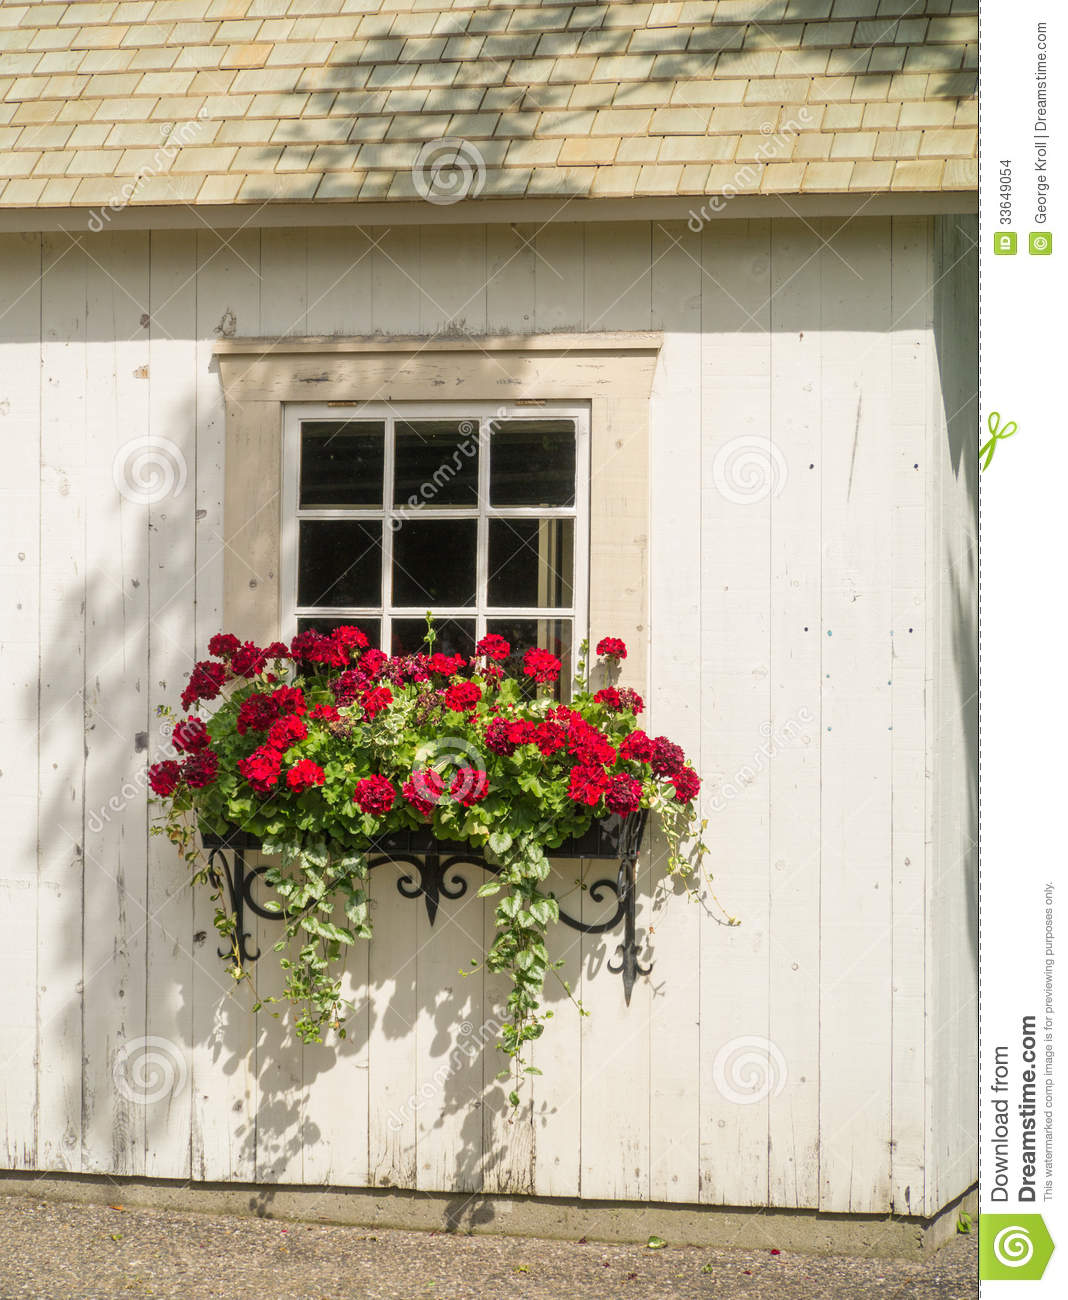 white wall window and flowers in window box planter stock images image 33649054. Black Bedroom Furniture Sets. Home Design Ideas